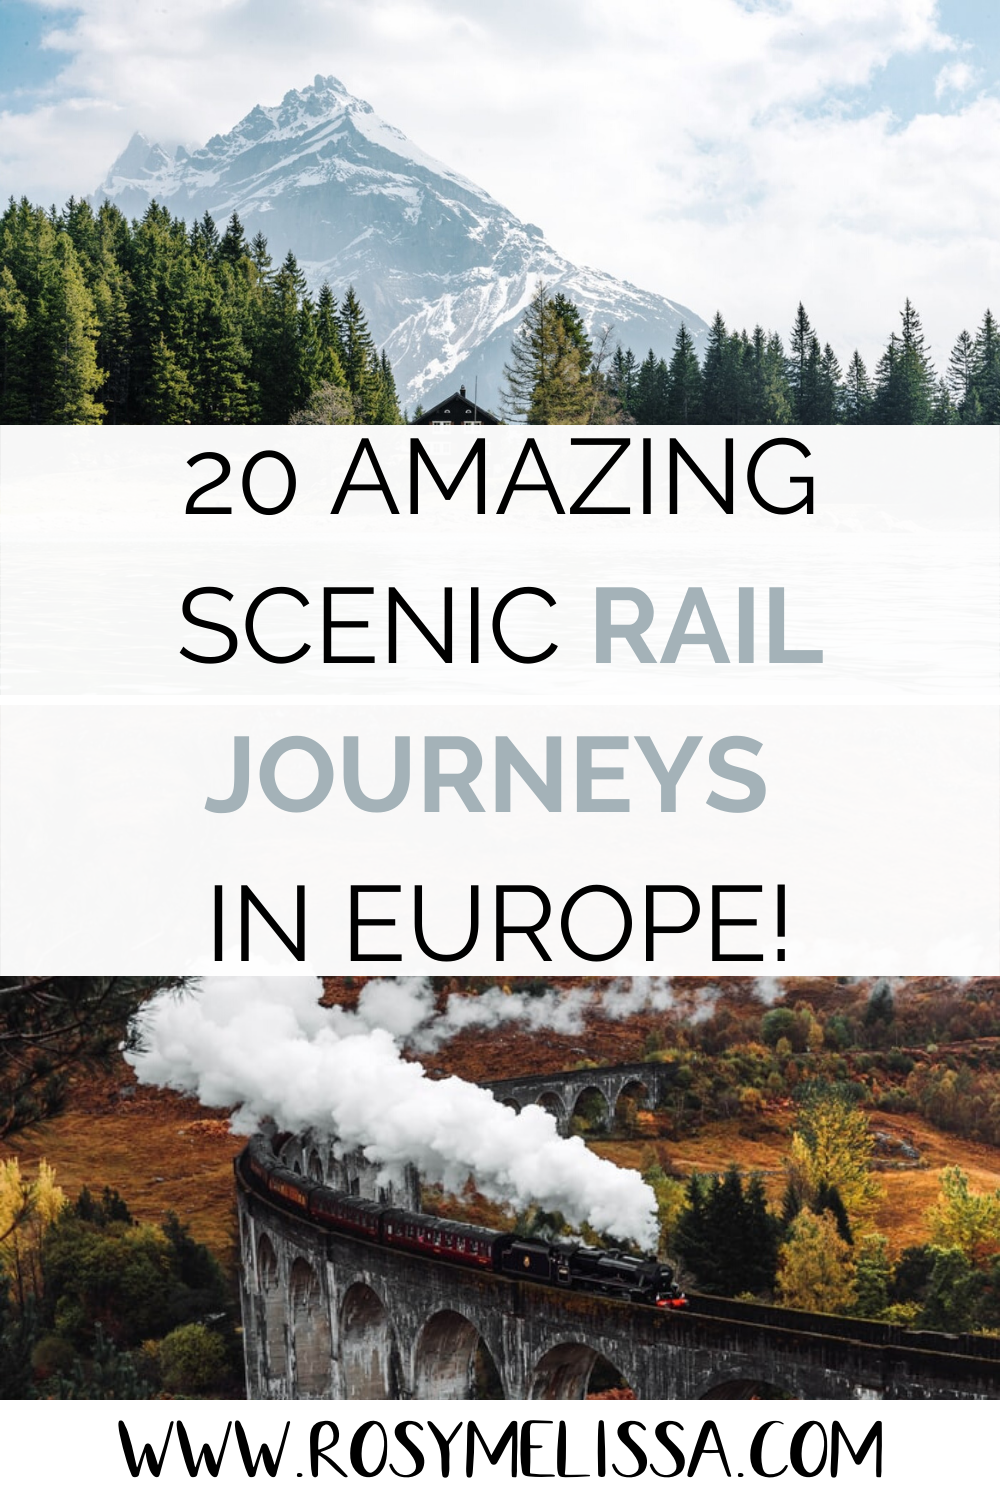 20 amazing scenic rail journeys in europe to discover different countries